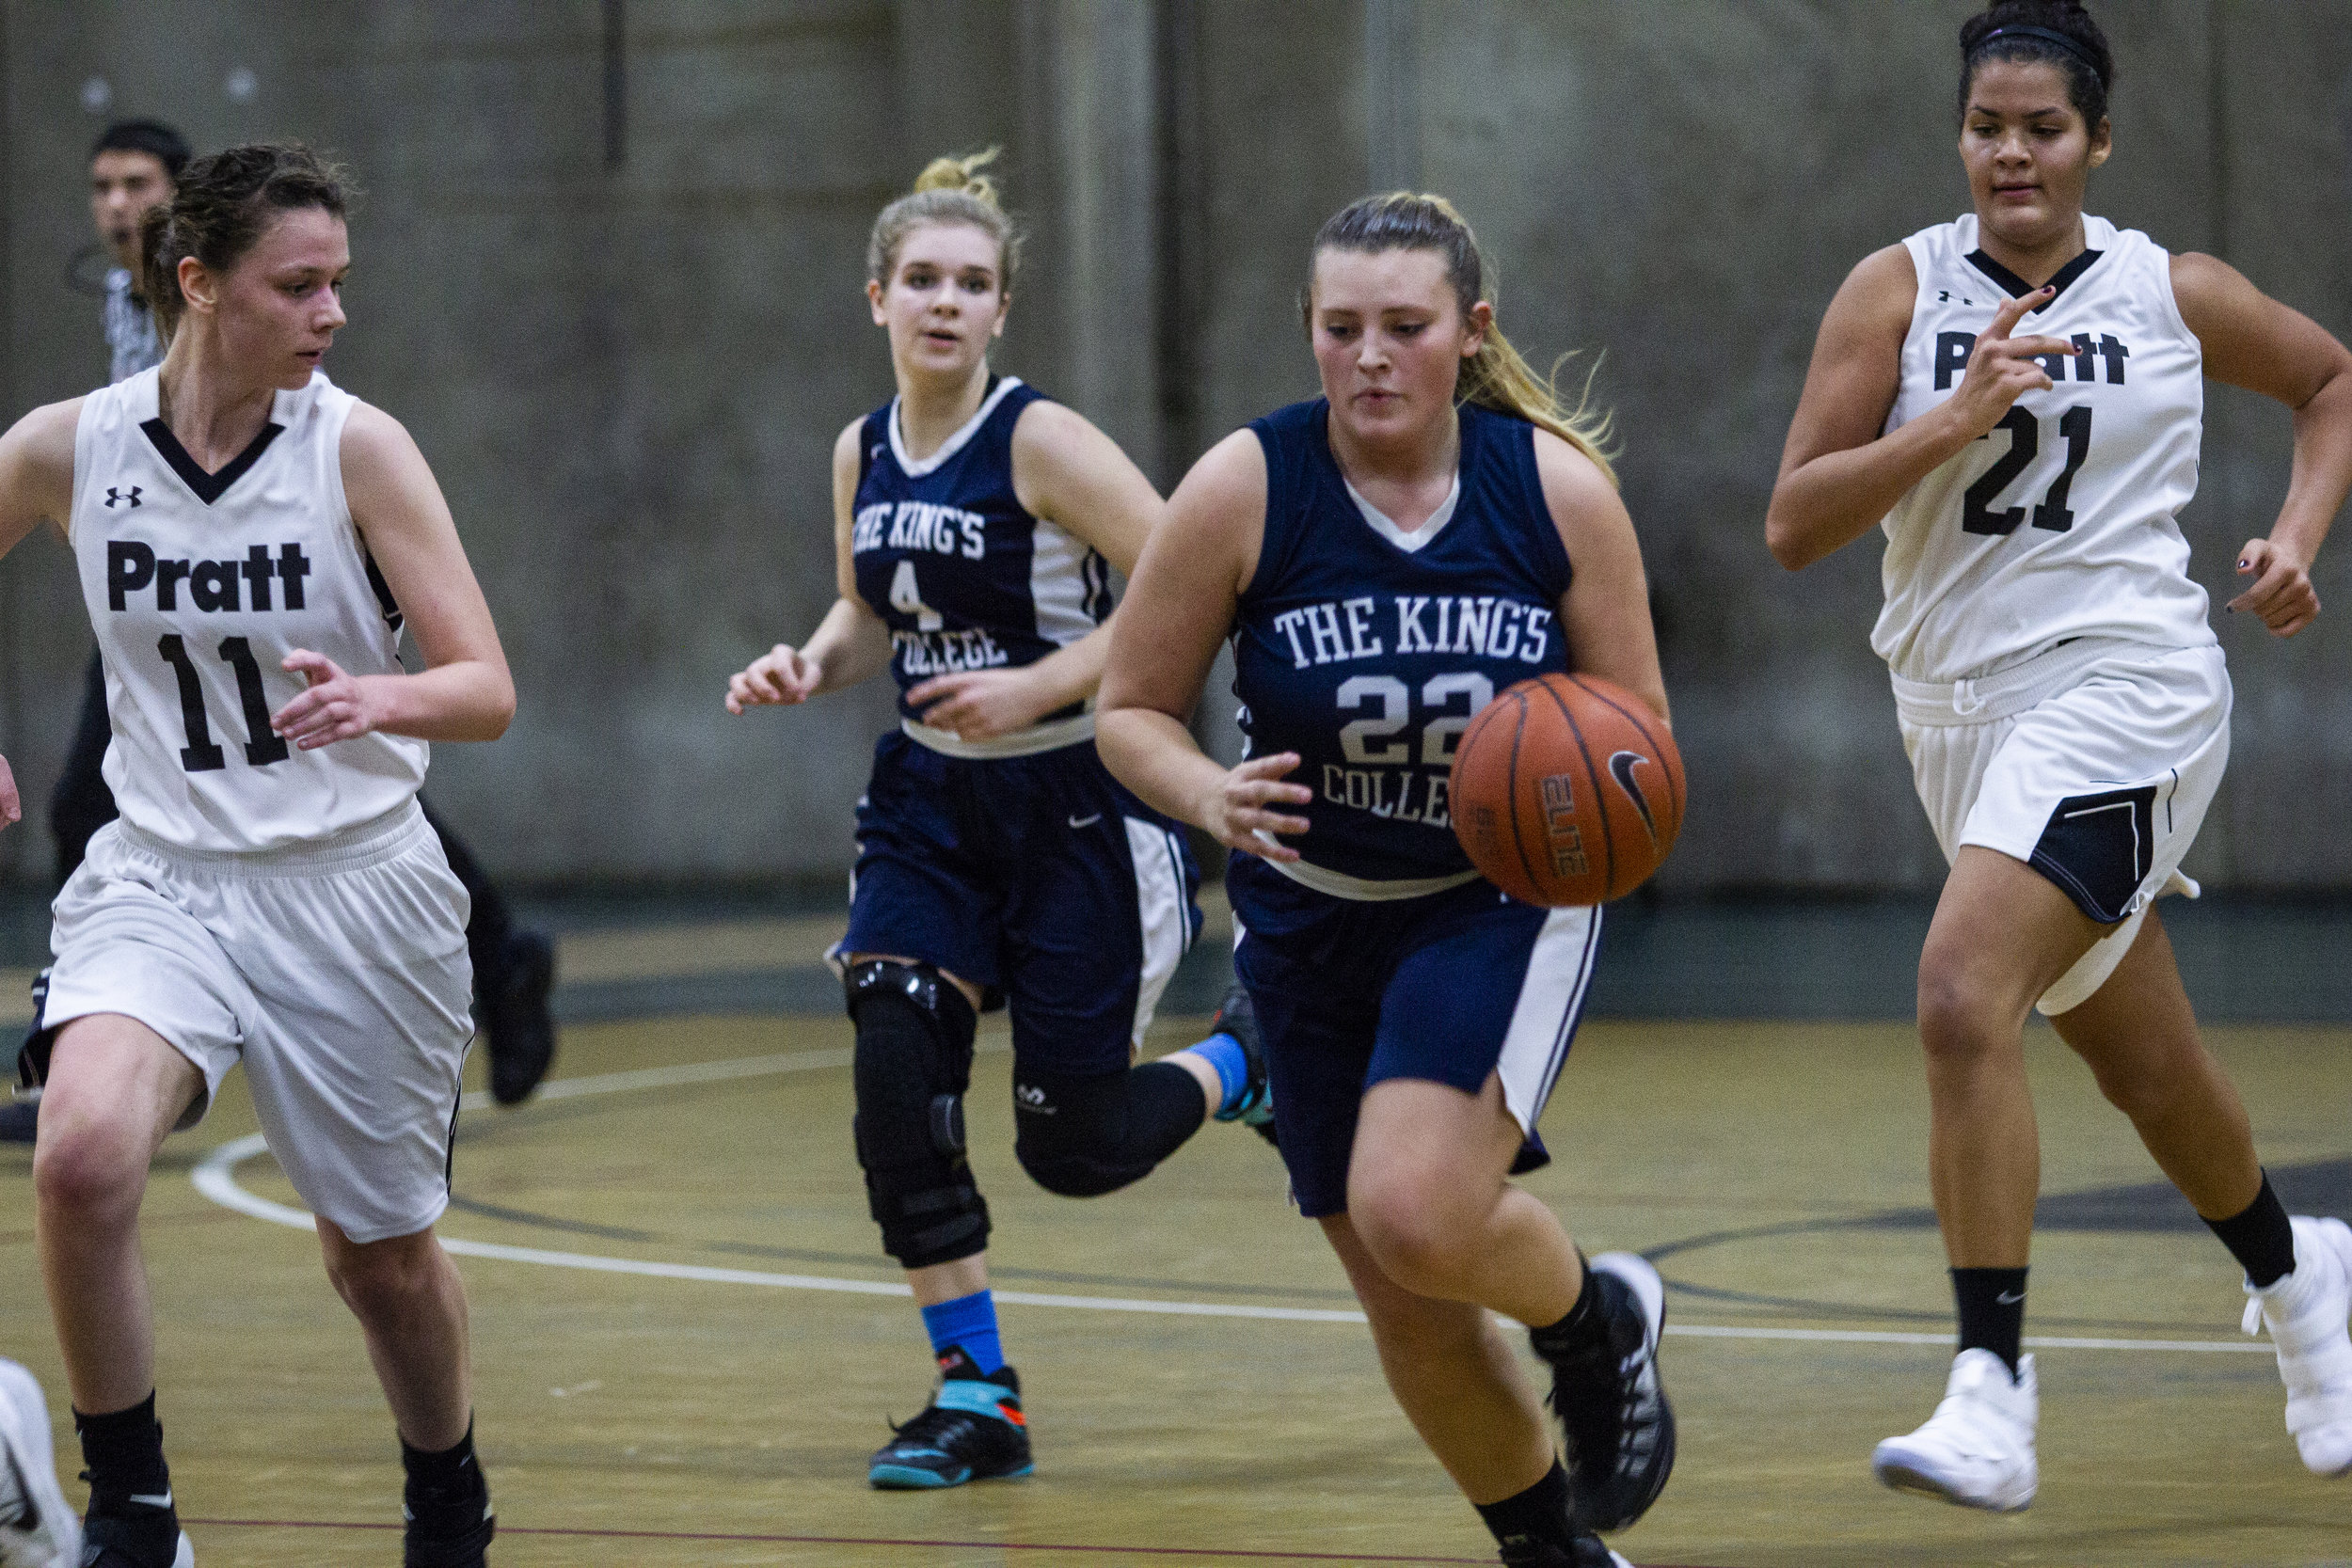 Sophomores Bailey Kauffman and Catie Shoemaker in The King's College vs Pratt game in the 2017-2018 season || Photo Credits Bernadette Berdychowski